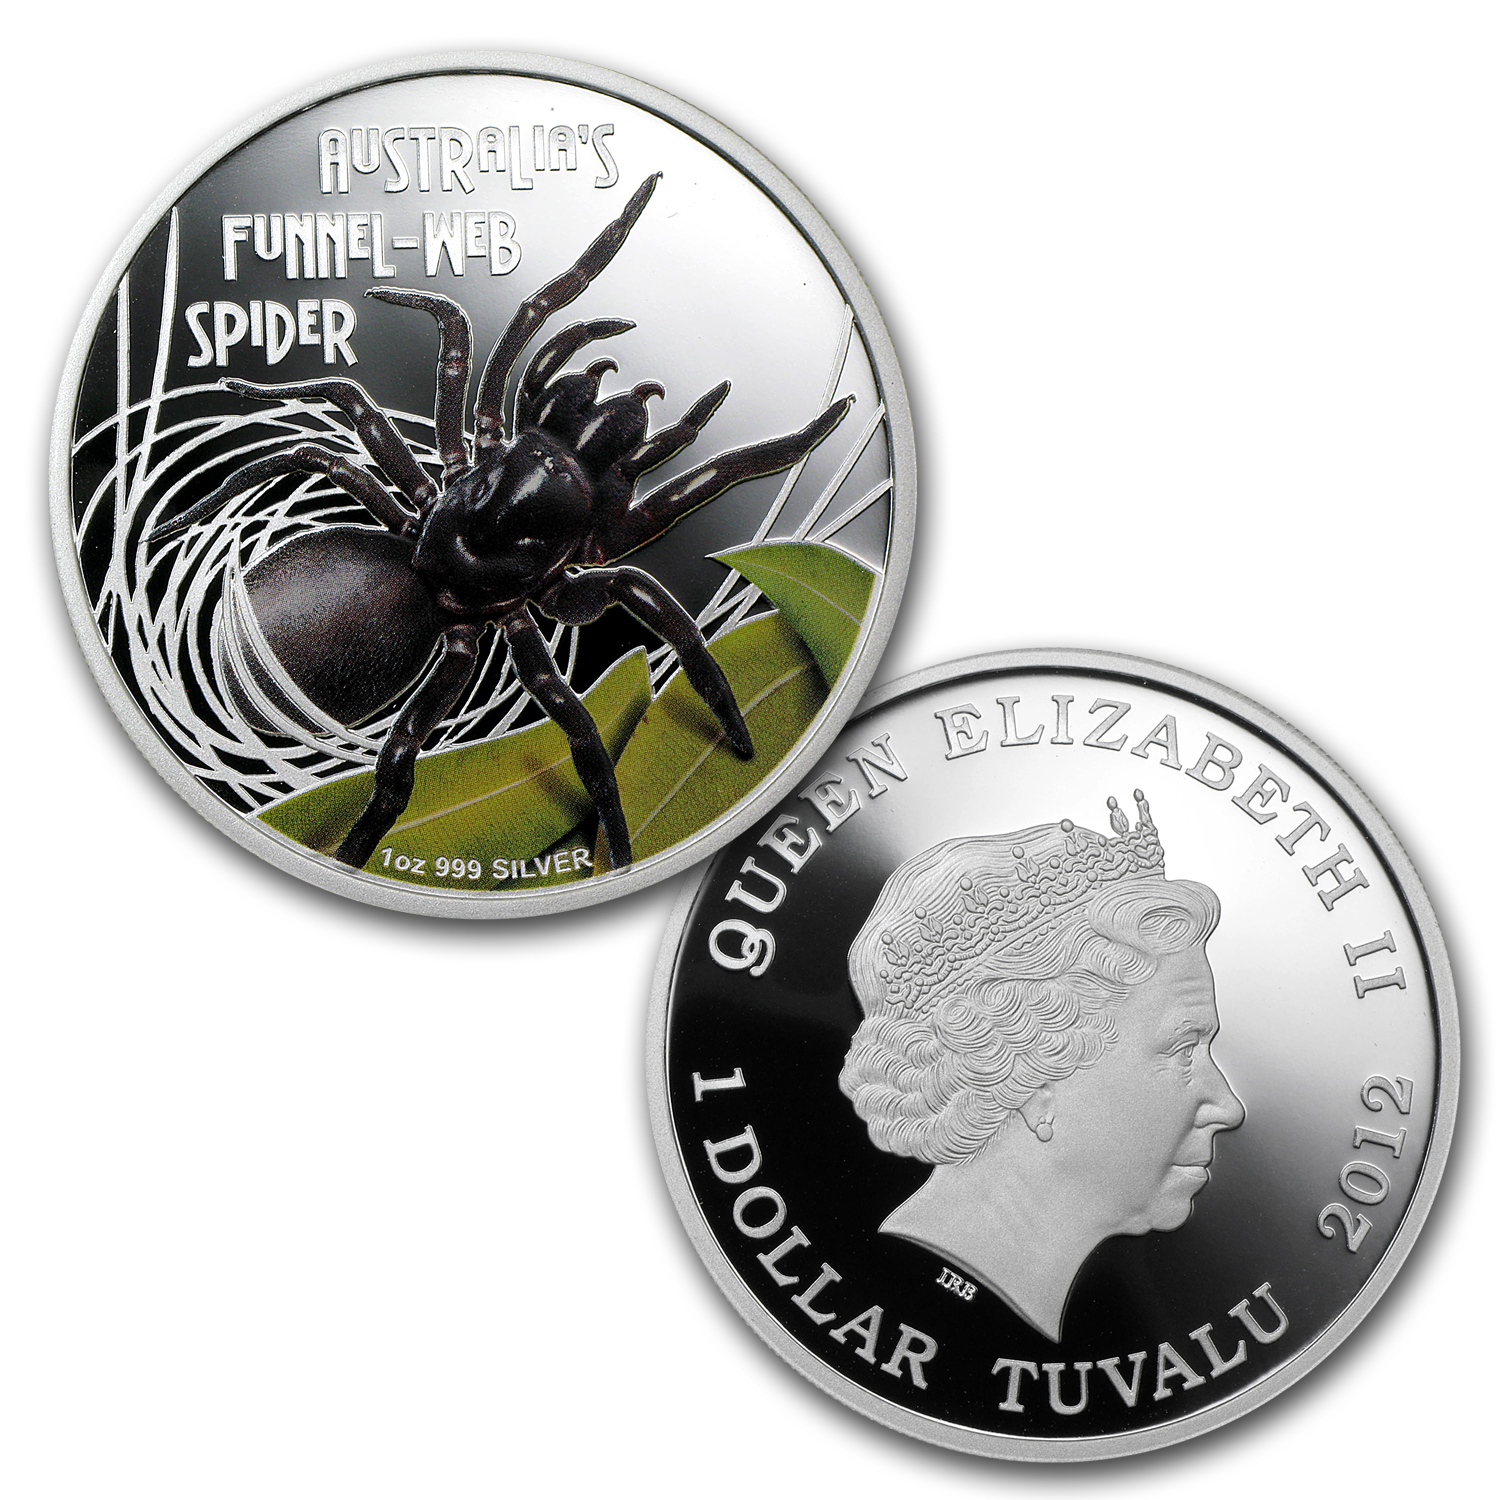 2011-12 2-Coin 1 oz Silver Box Jellyfish/Funnel Web Spider Pf Set